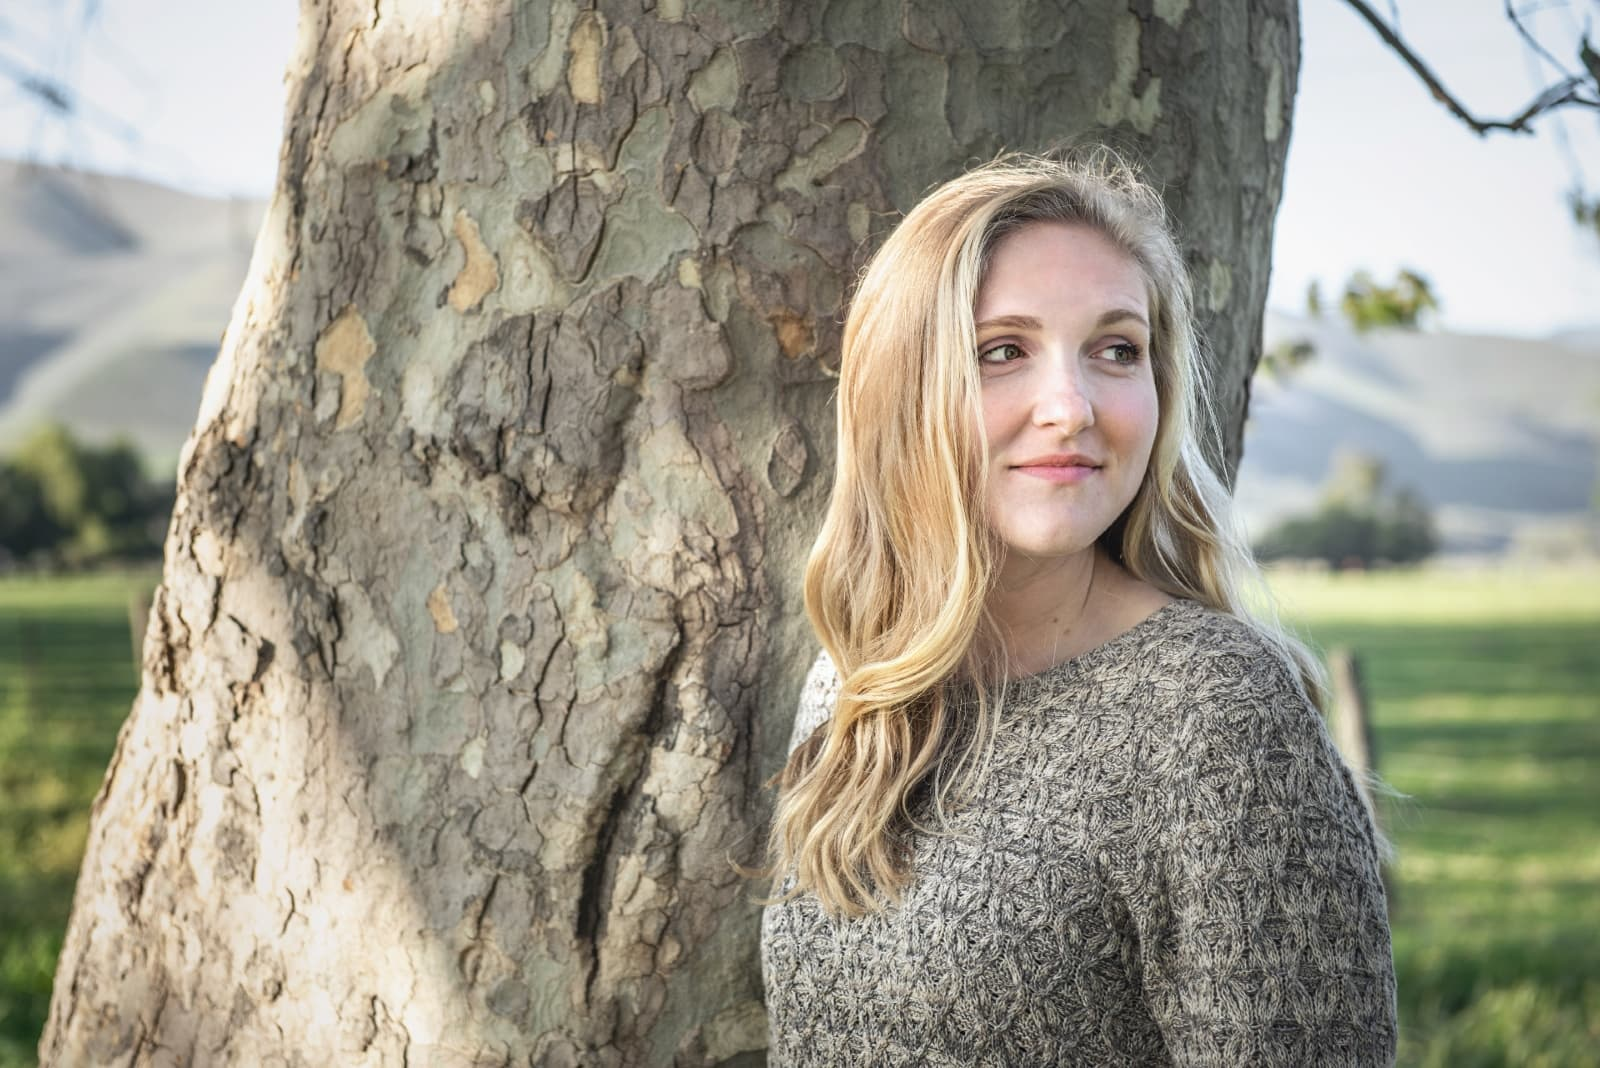 blonde woman in gray sweater standing near tree